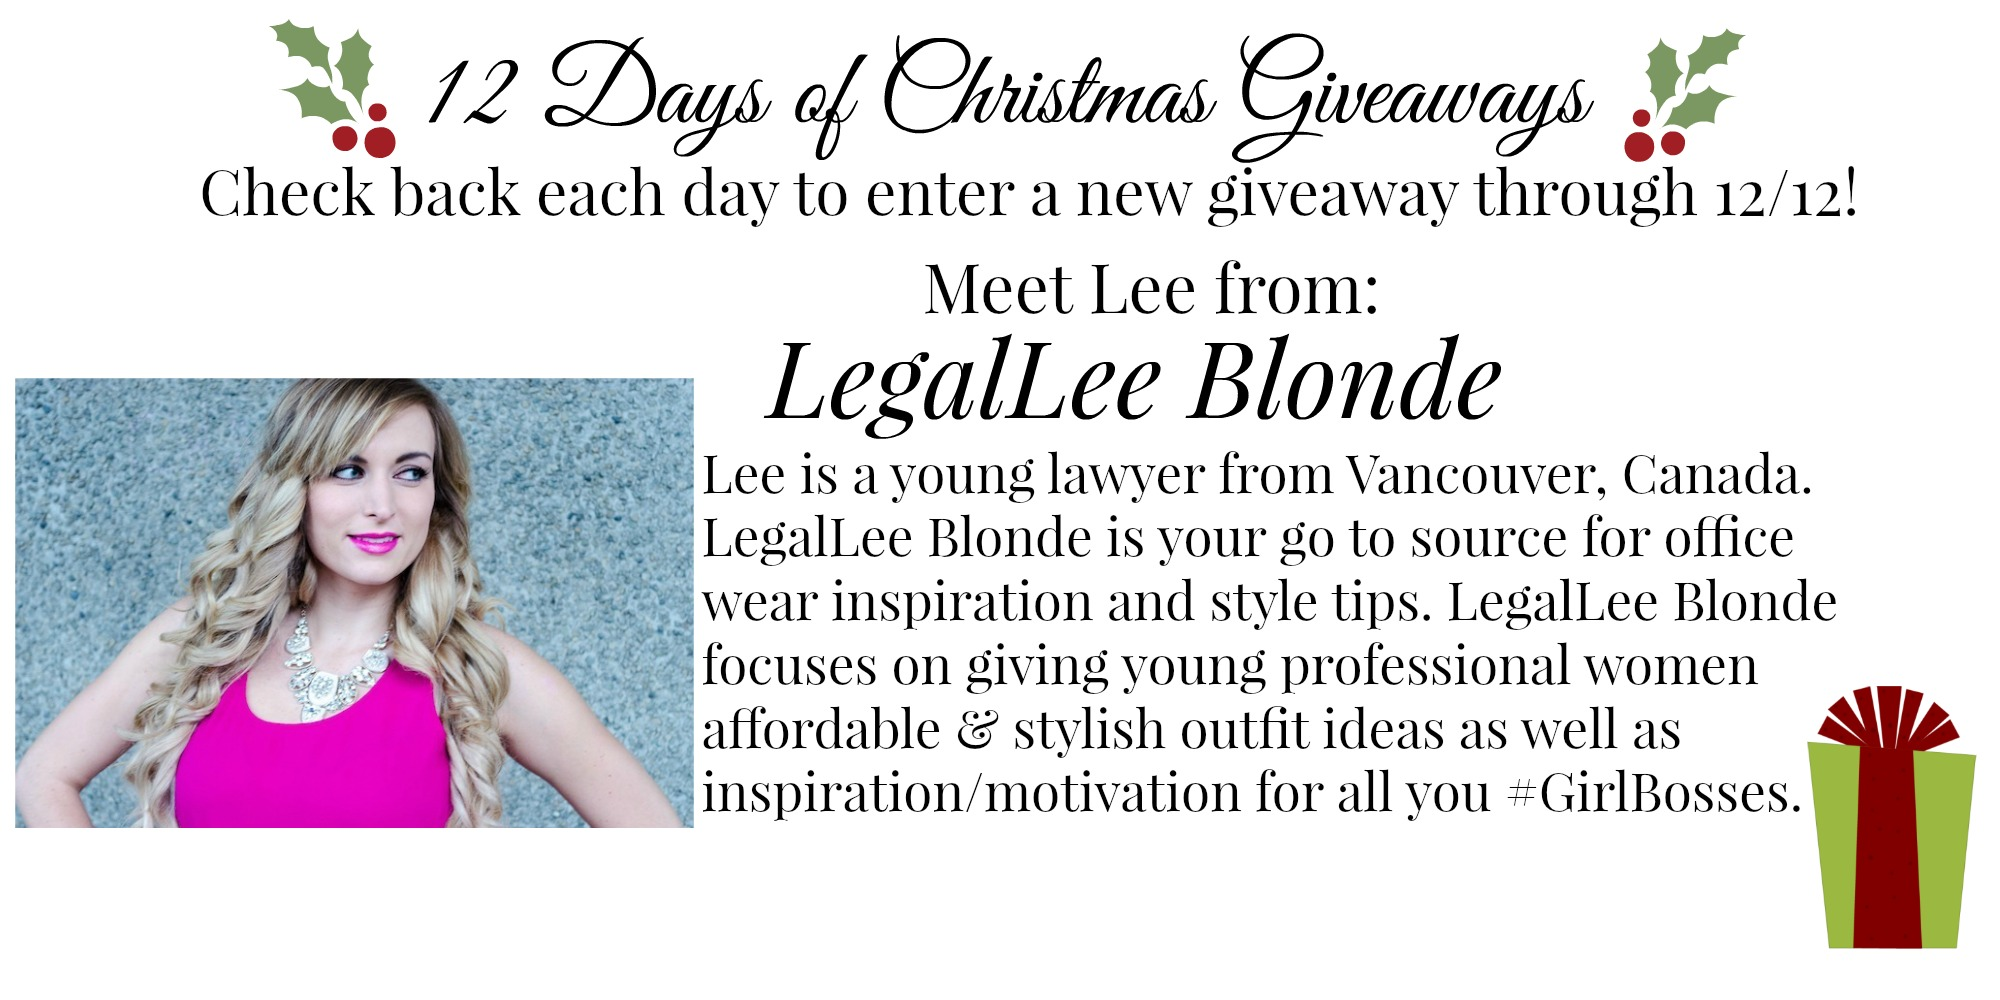 {12 Days of Christmas Giveaways} | Days 8, 9 & 10